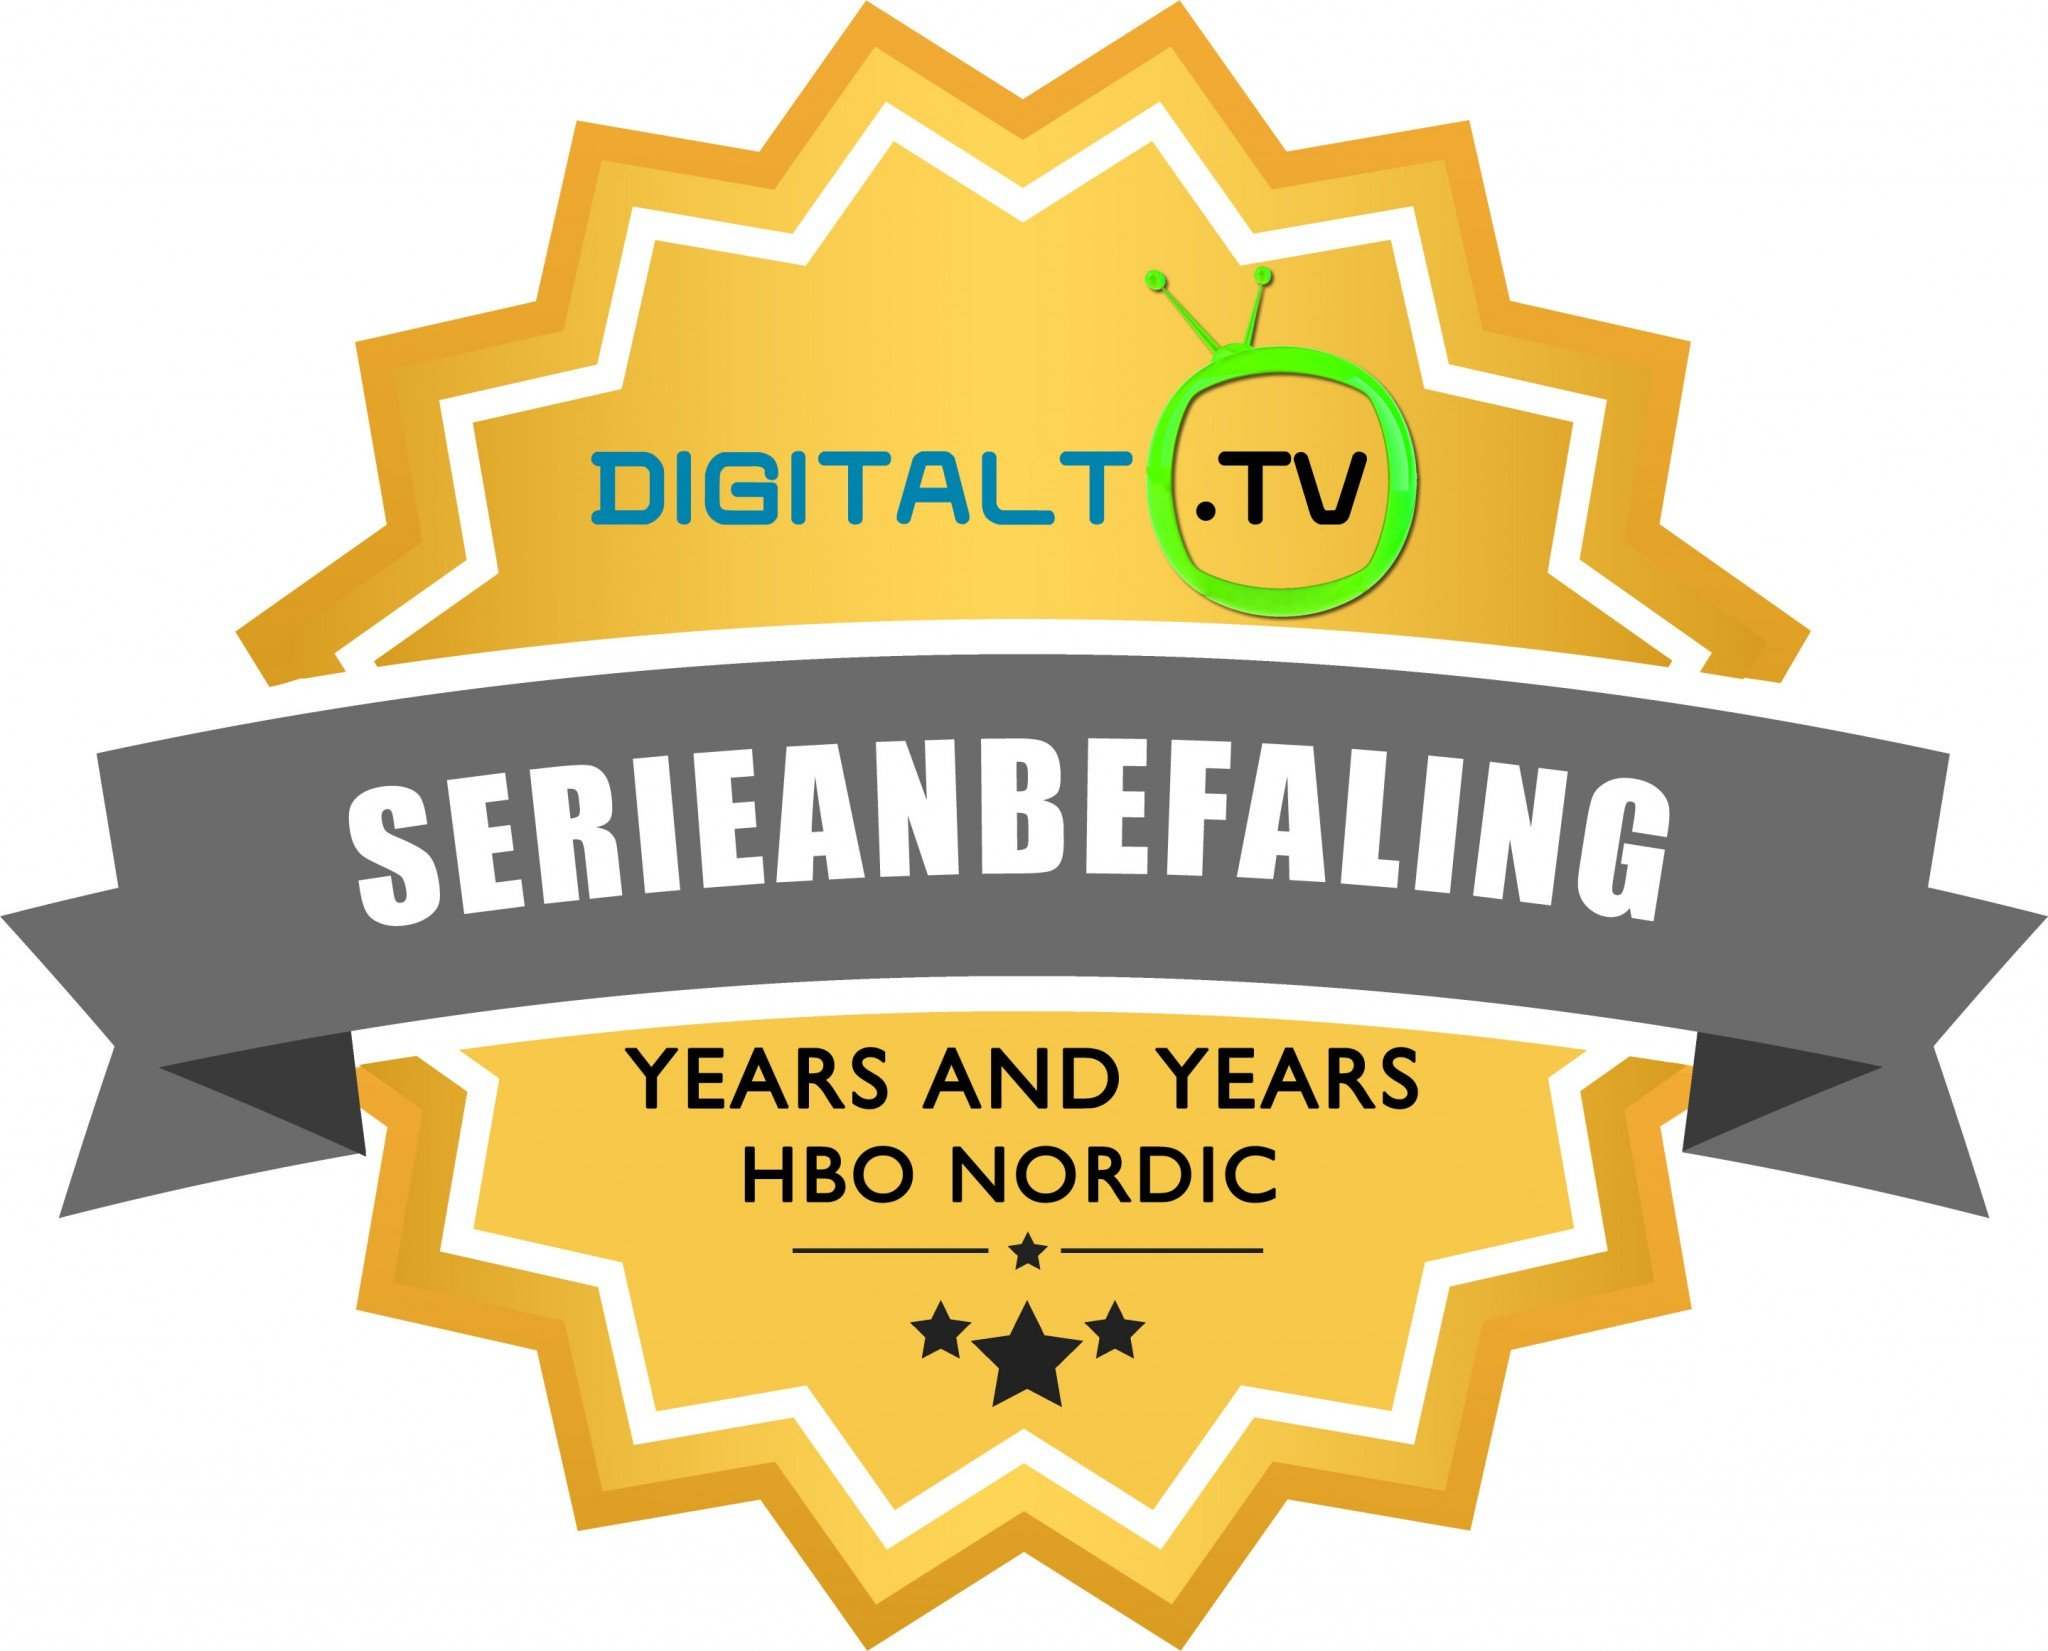 Serieanbefaling Years and Years